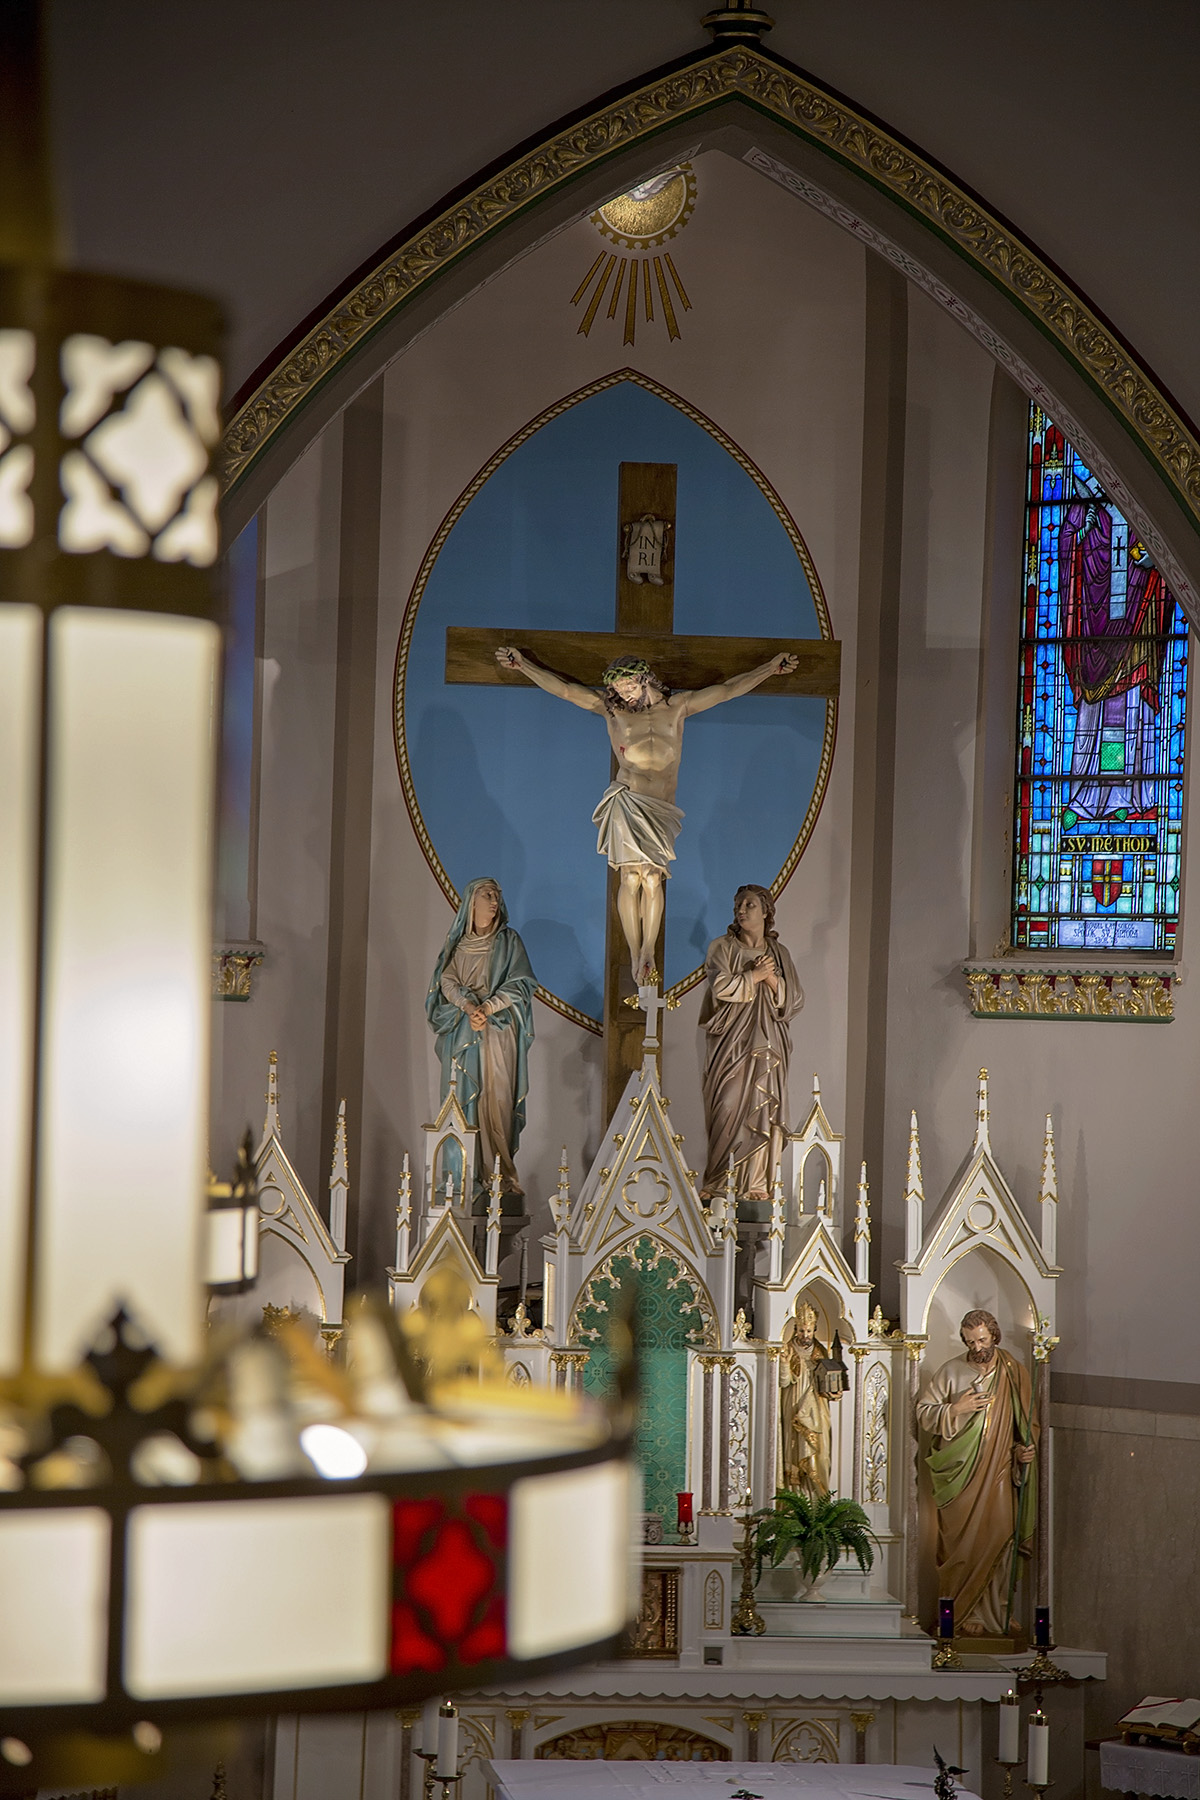 Crucifix behind the altar at Incarnation of Our Lord Church. Photo courtesy of Erick Macek (www.erickmacek.com)